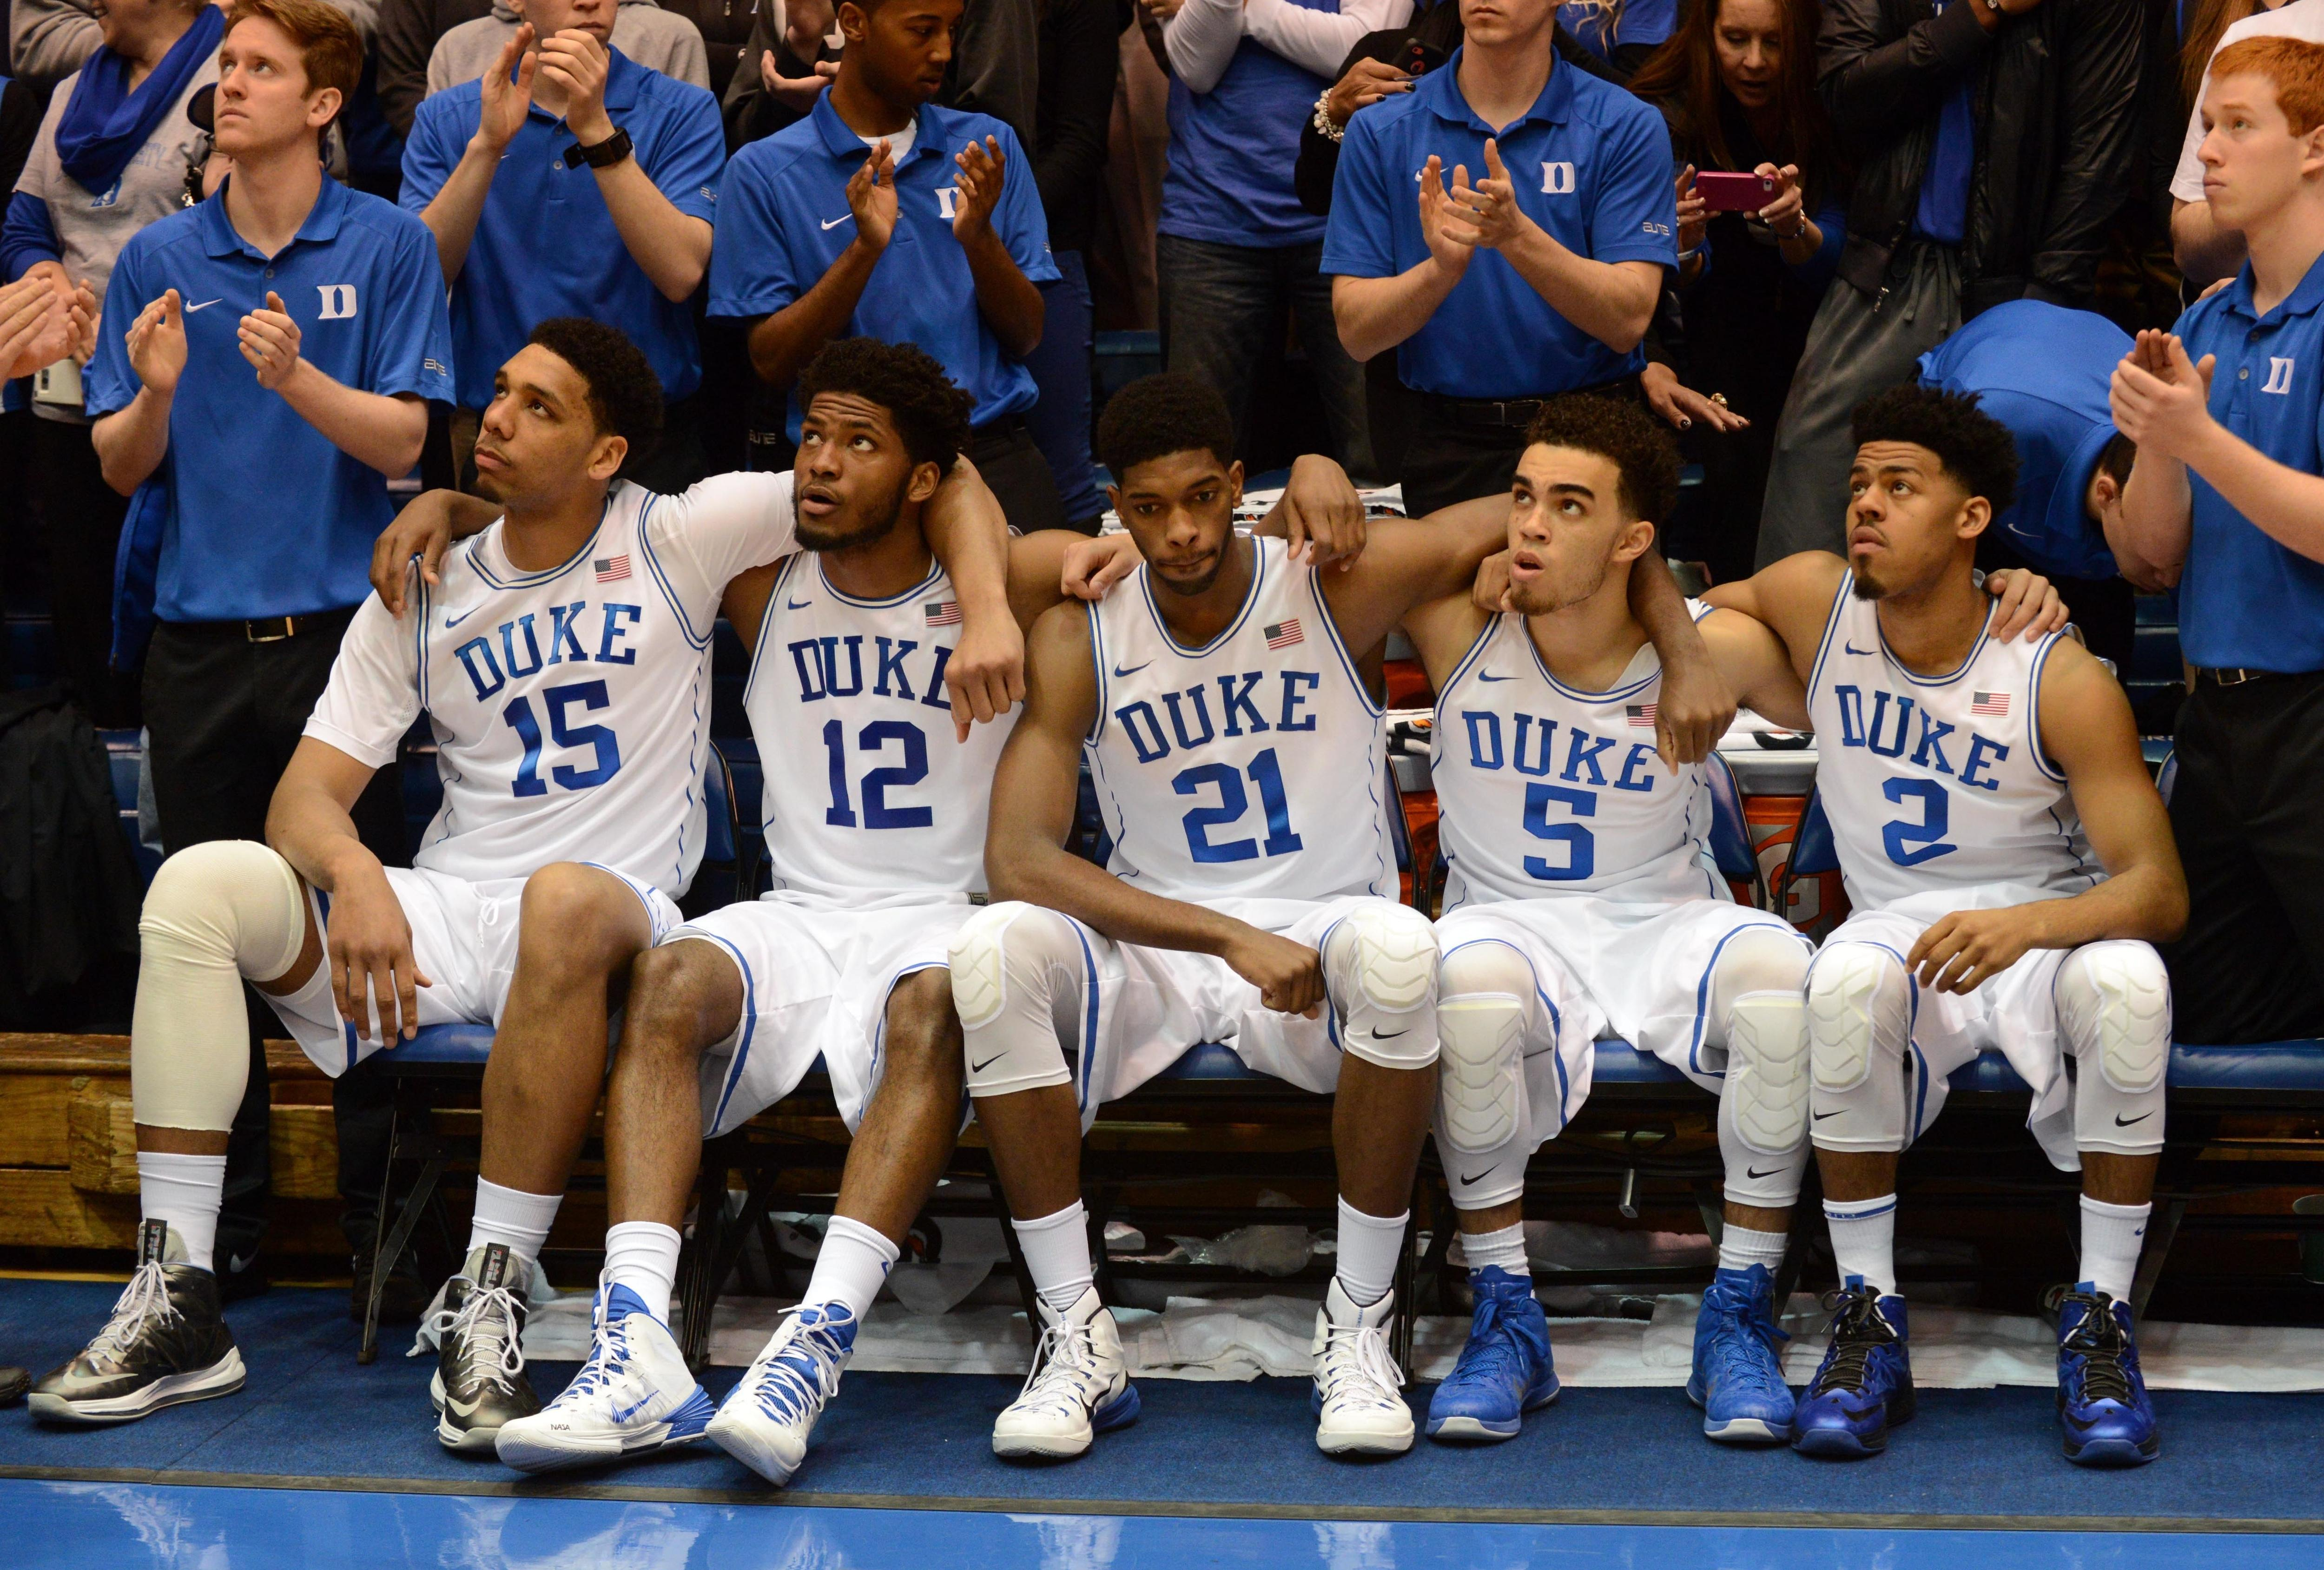 These colleges have the most players in the NBA Playoffs